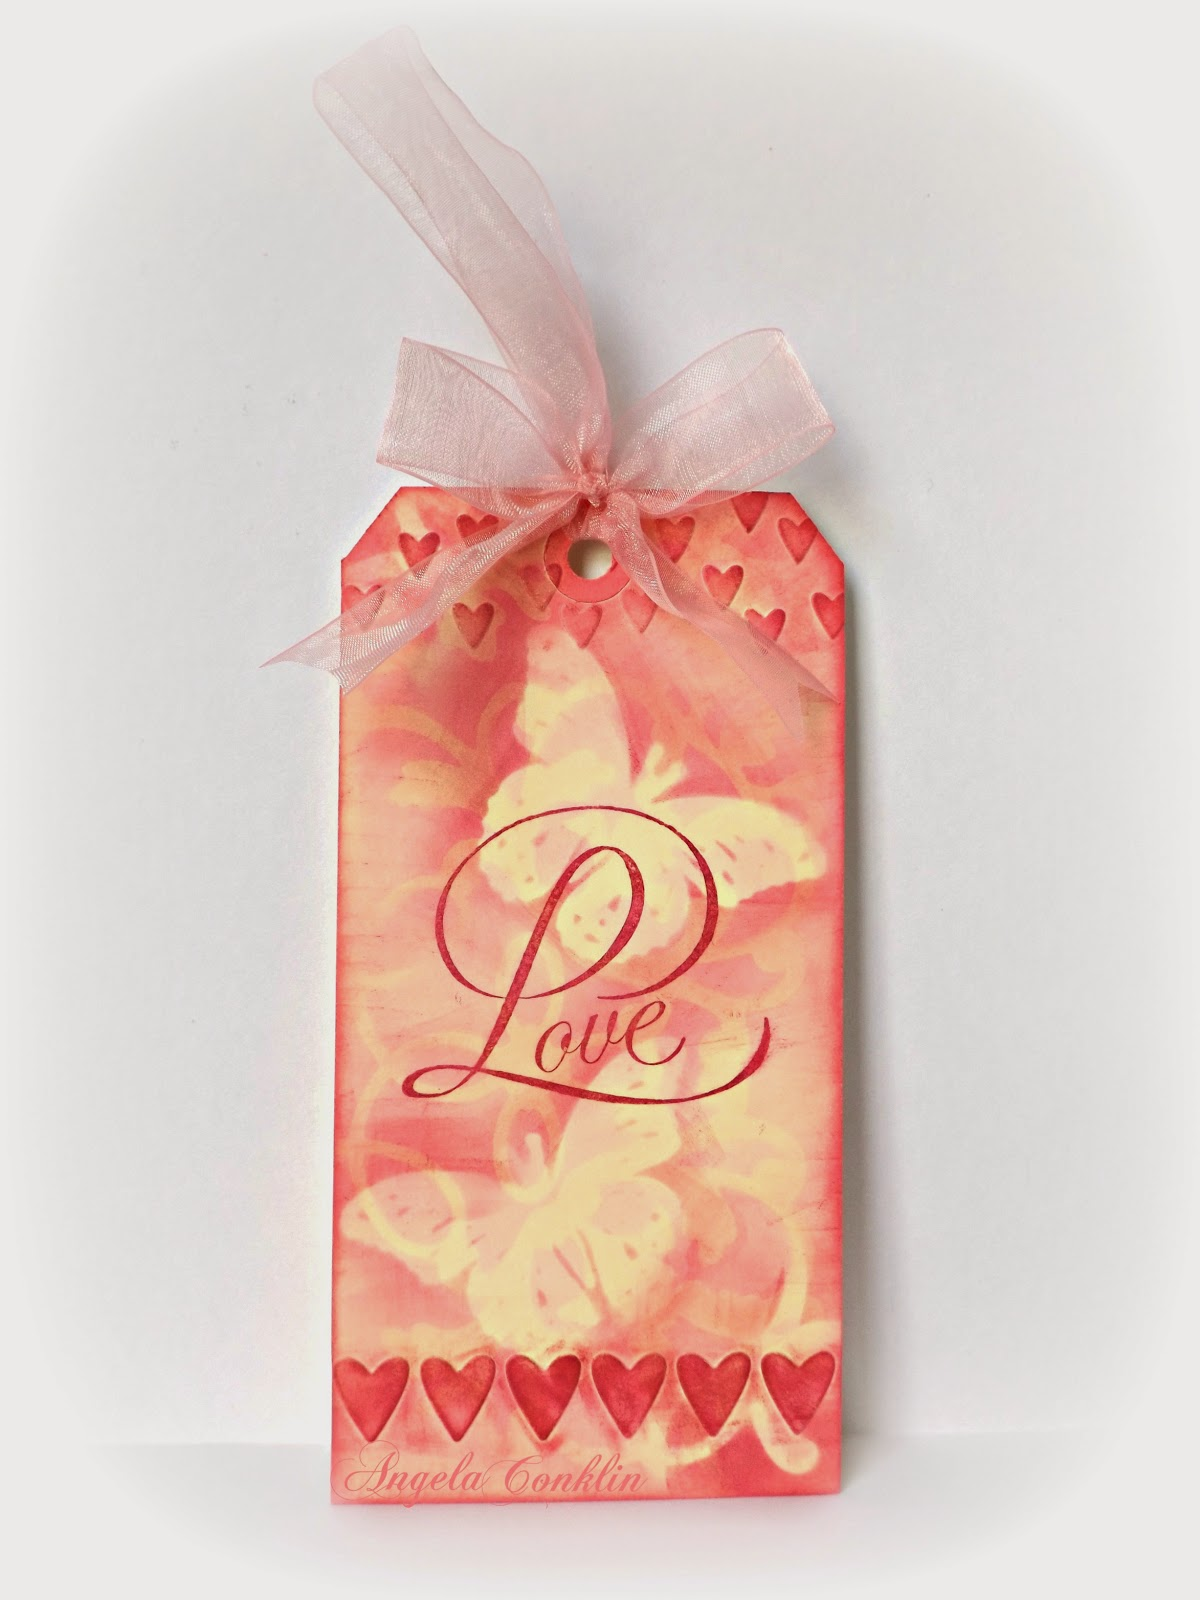 Handmade Valentine's Day Gift Tag: Love with Hearts and Butterflies